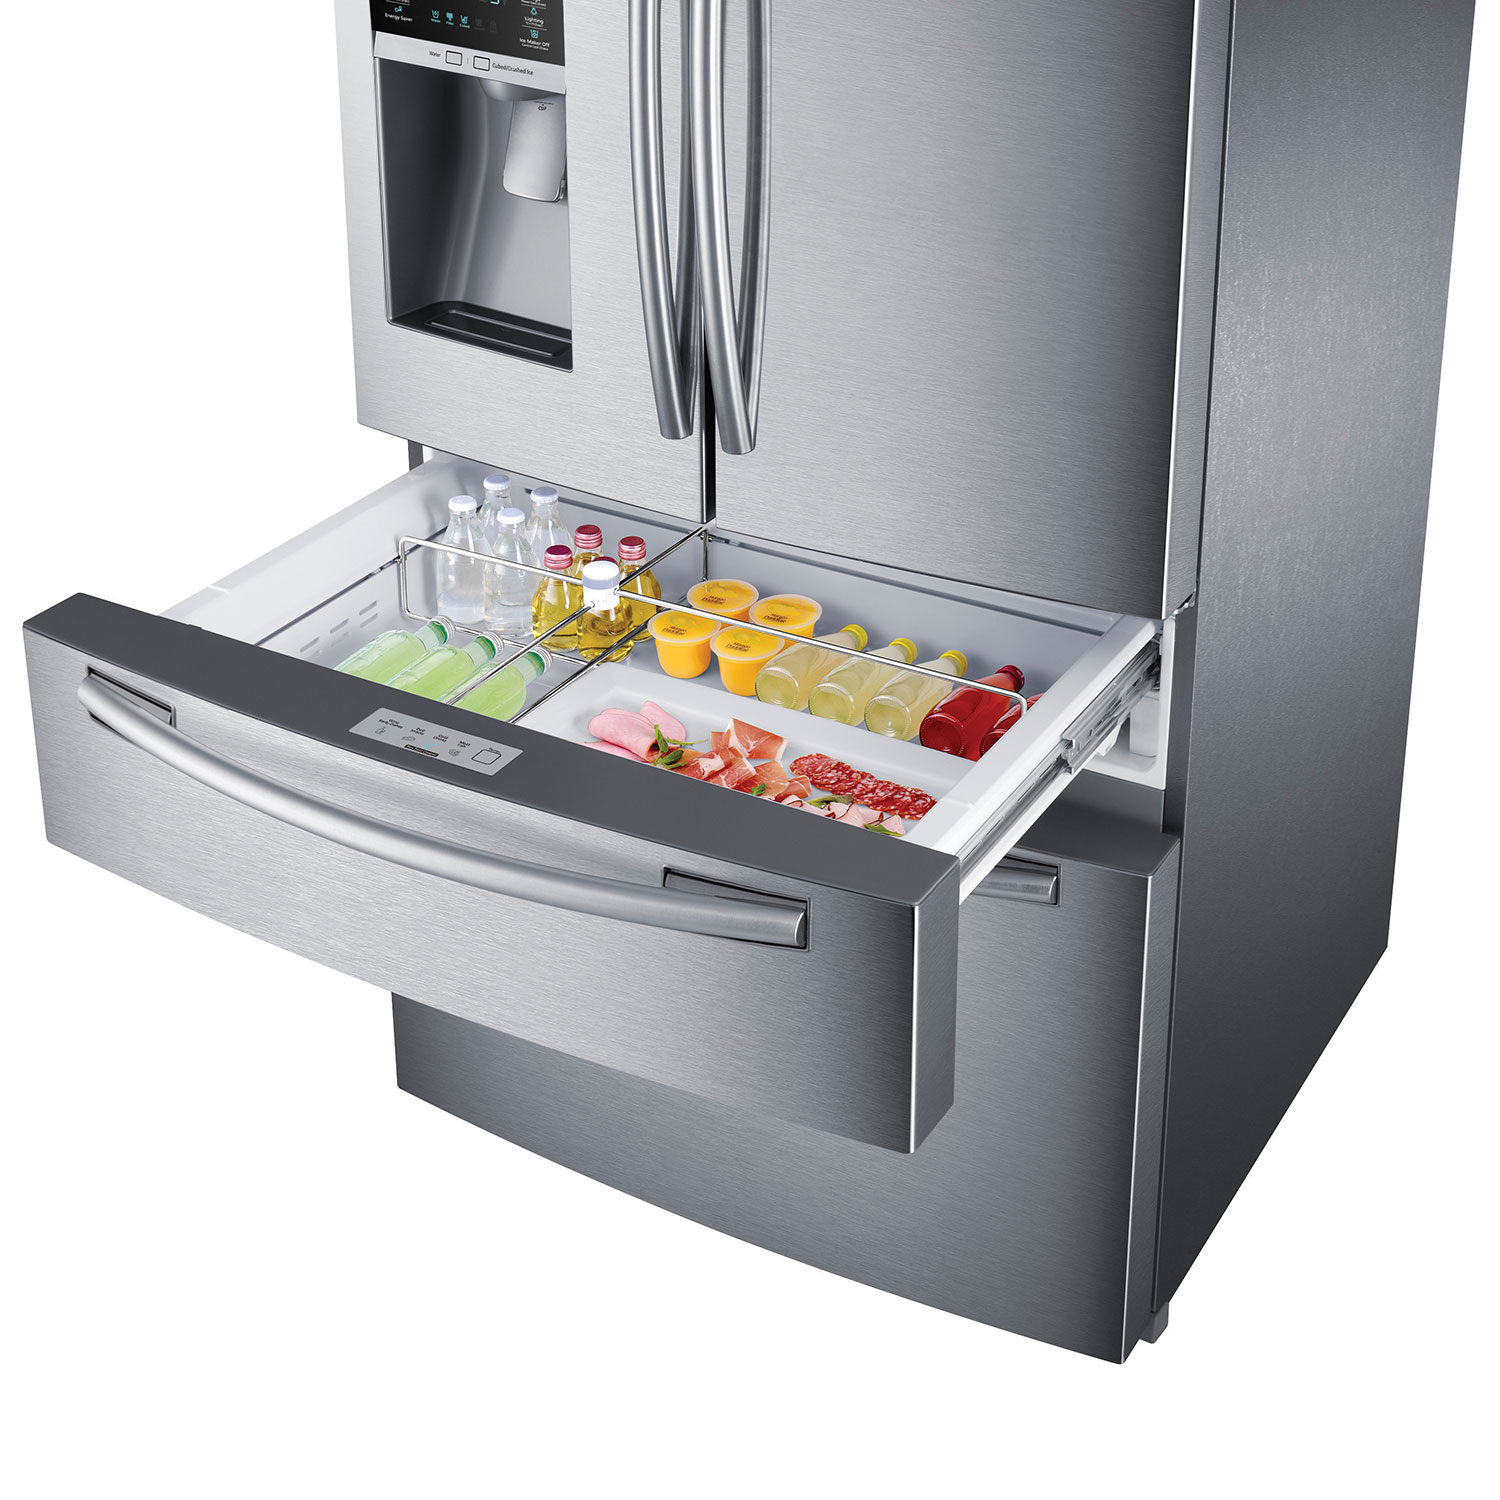 mid-level drawer upgrade your refrigerator